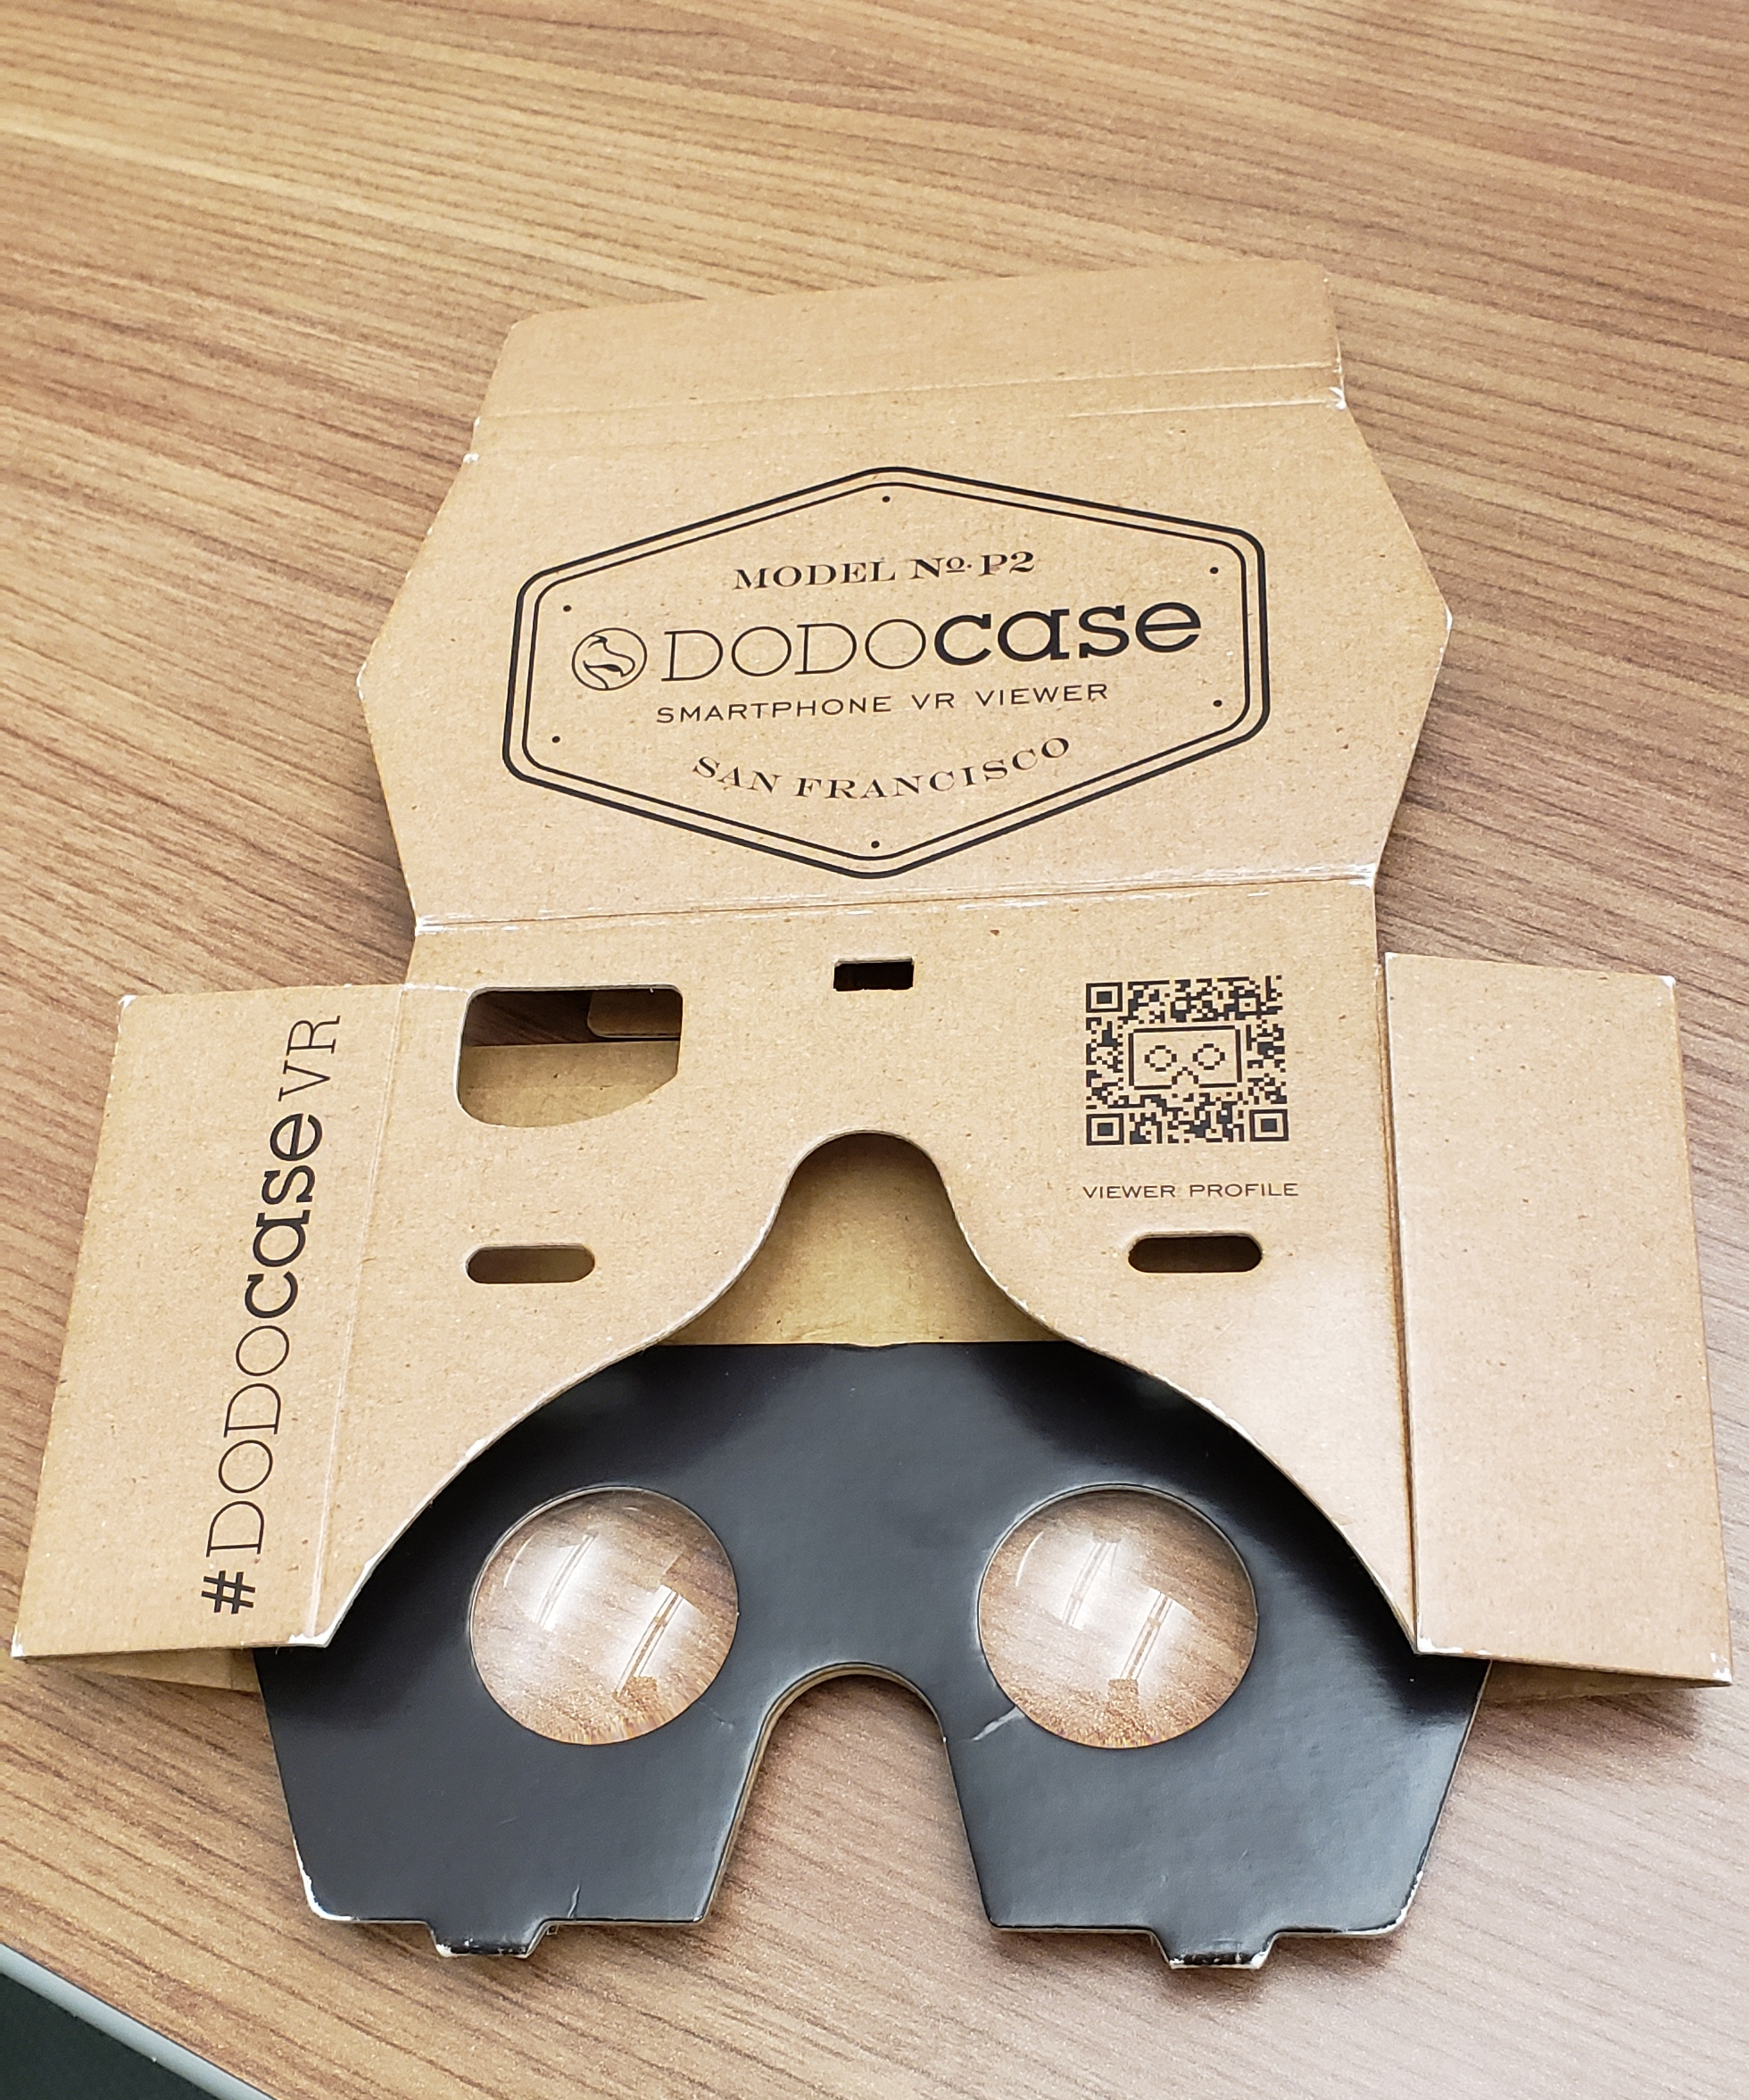 Back side of the google cardboard device